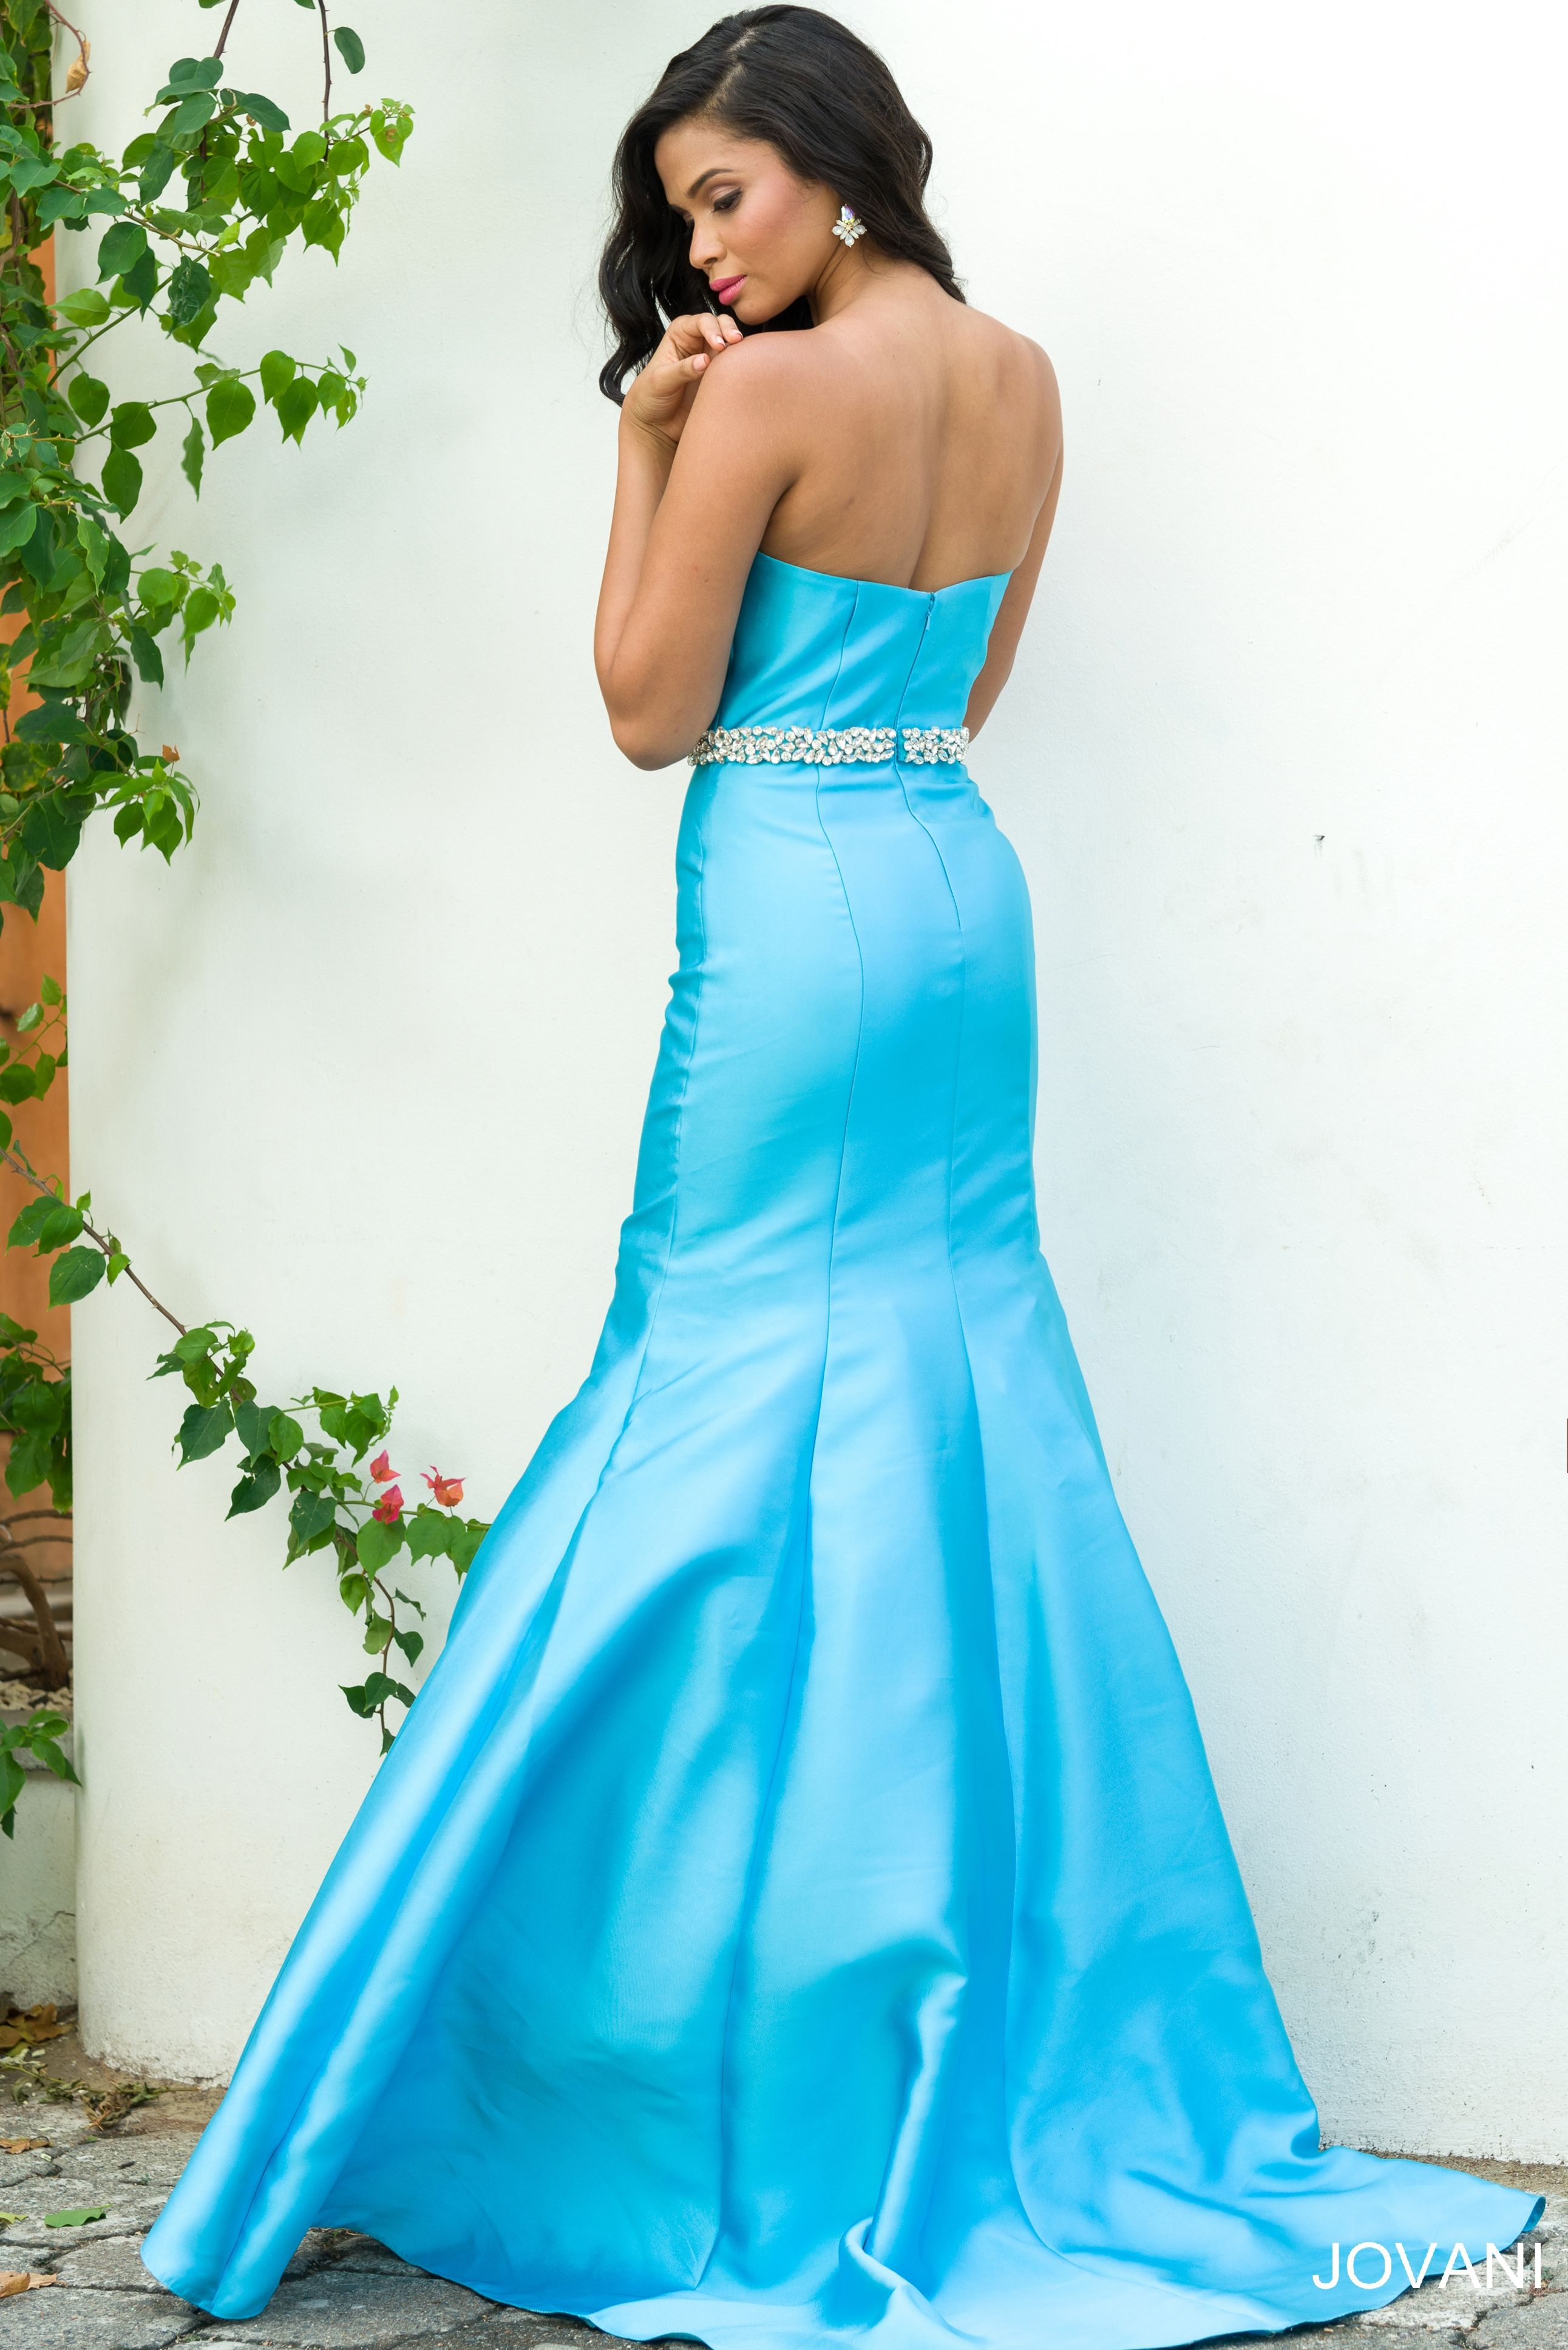 Jovani Prom Dress available at WhatchamaCallit Boutique #Prom2k16 ...